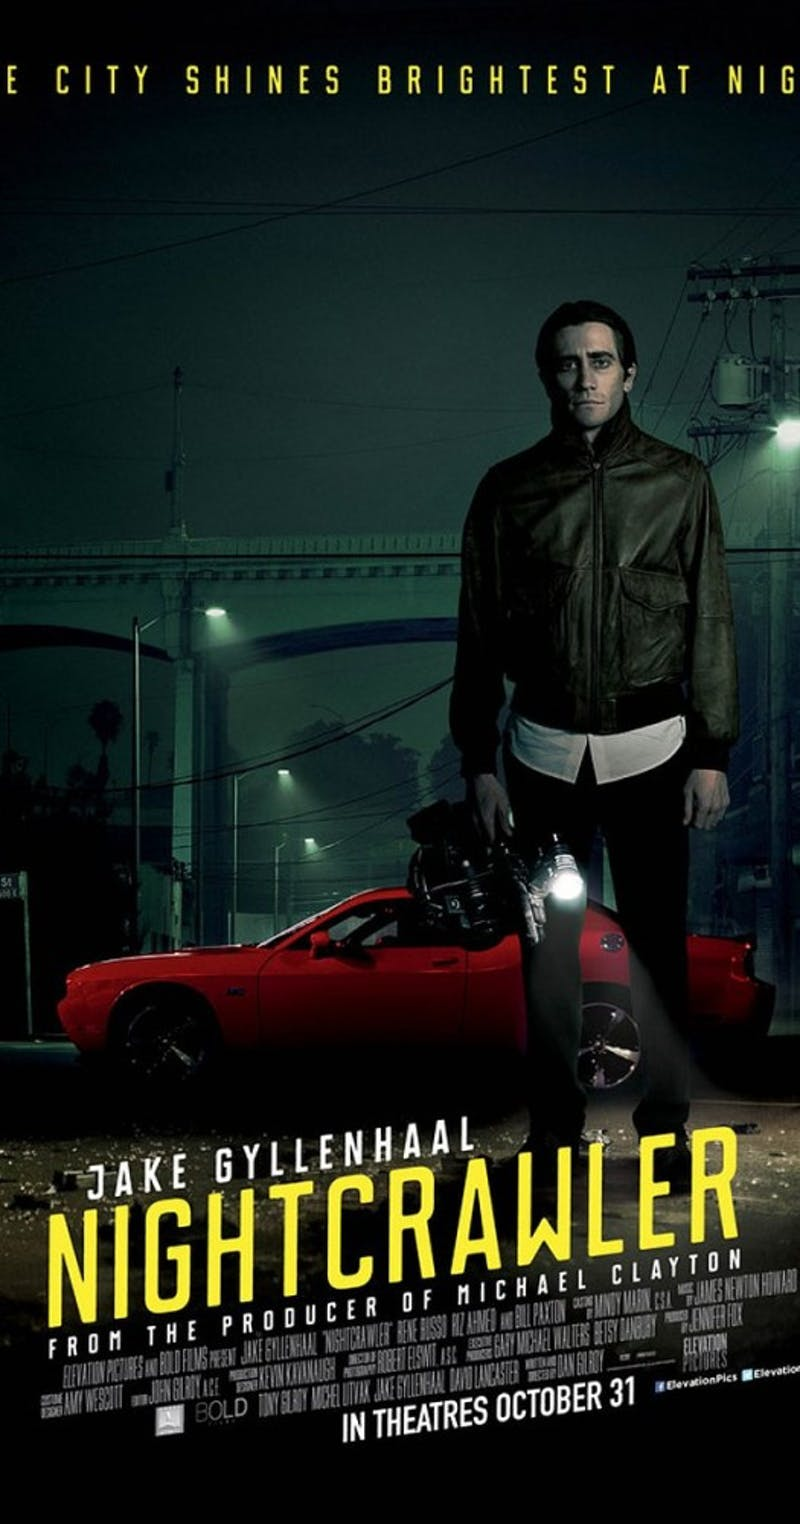 'Nightcrawler' premiered in 2014 as a thriller sure to deliver. (Photograph provided by 'Nightcrawler' Facebook page)